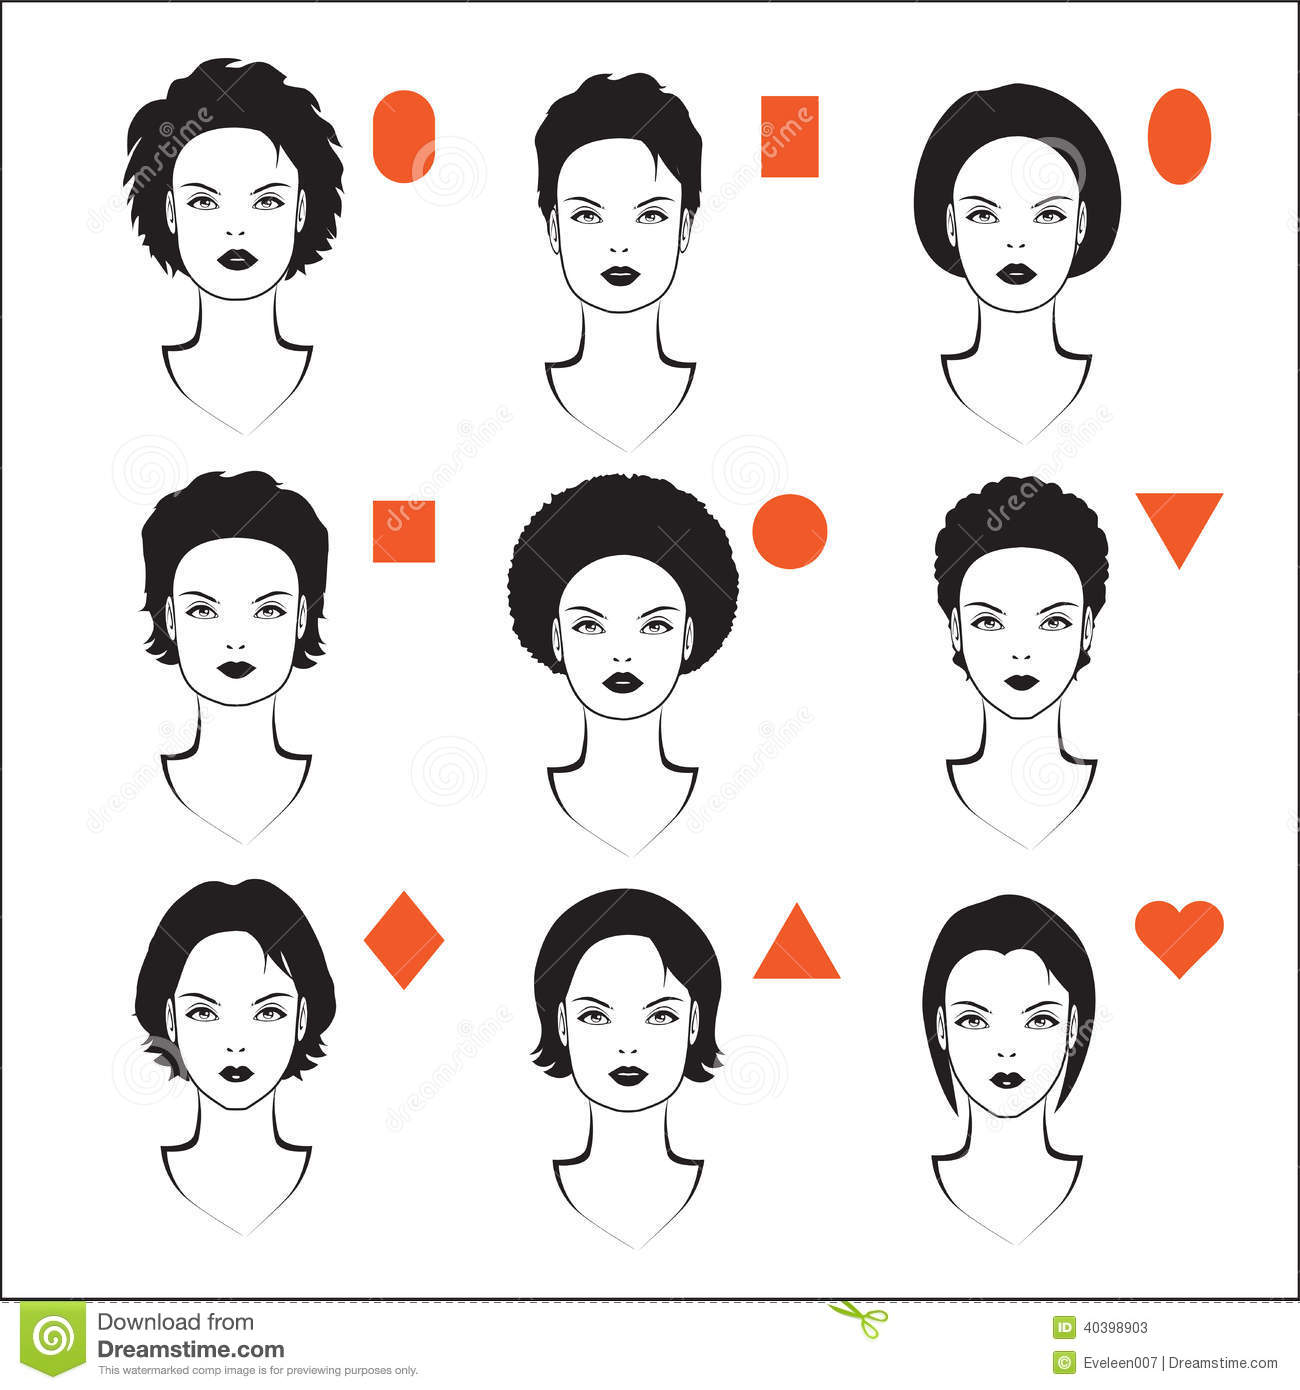 FlangesPN40EN1092 1 further Jic Fittings Size Chart as well How To Apply Makeup Chart moreover Sketch Face Man as well 186341325. on face chart 1